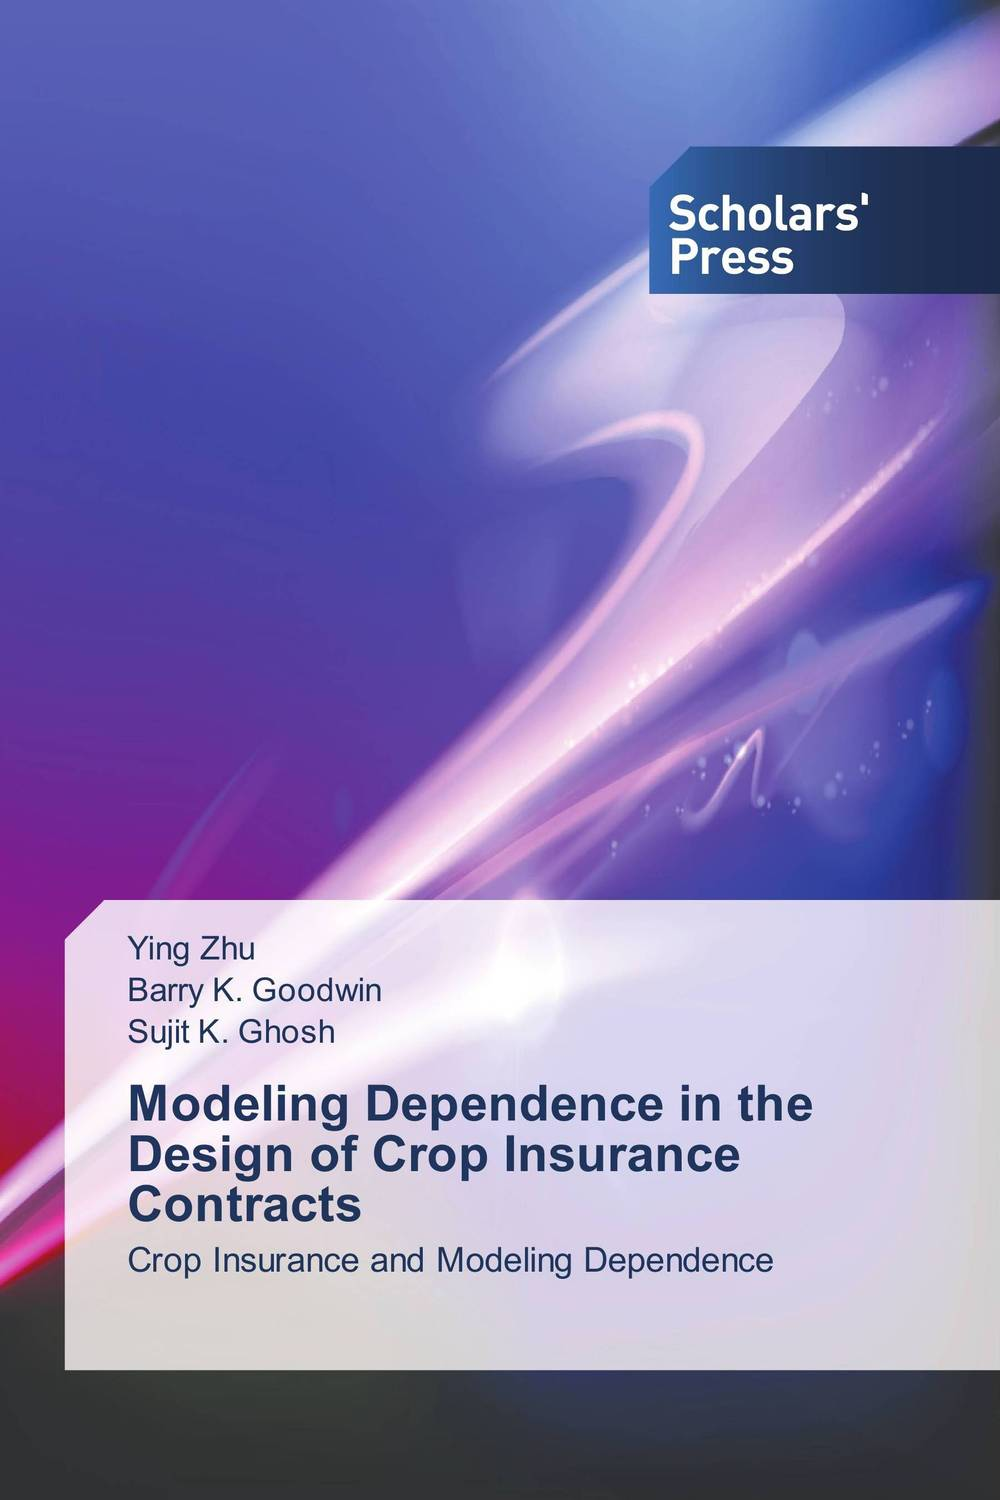 Modeling Dependence in the Design of Crop Insurance Contracts personality profile and induced psychosis in alcohol dependence